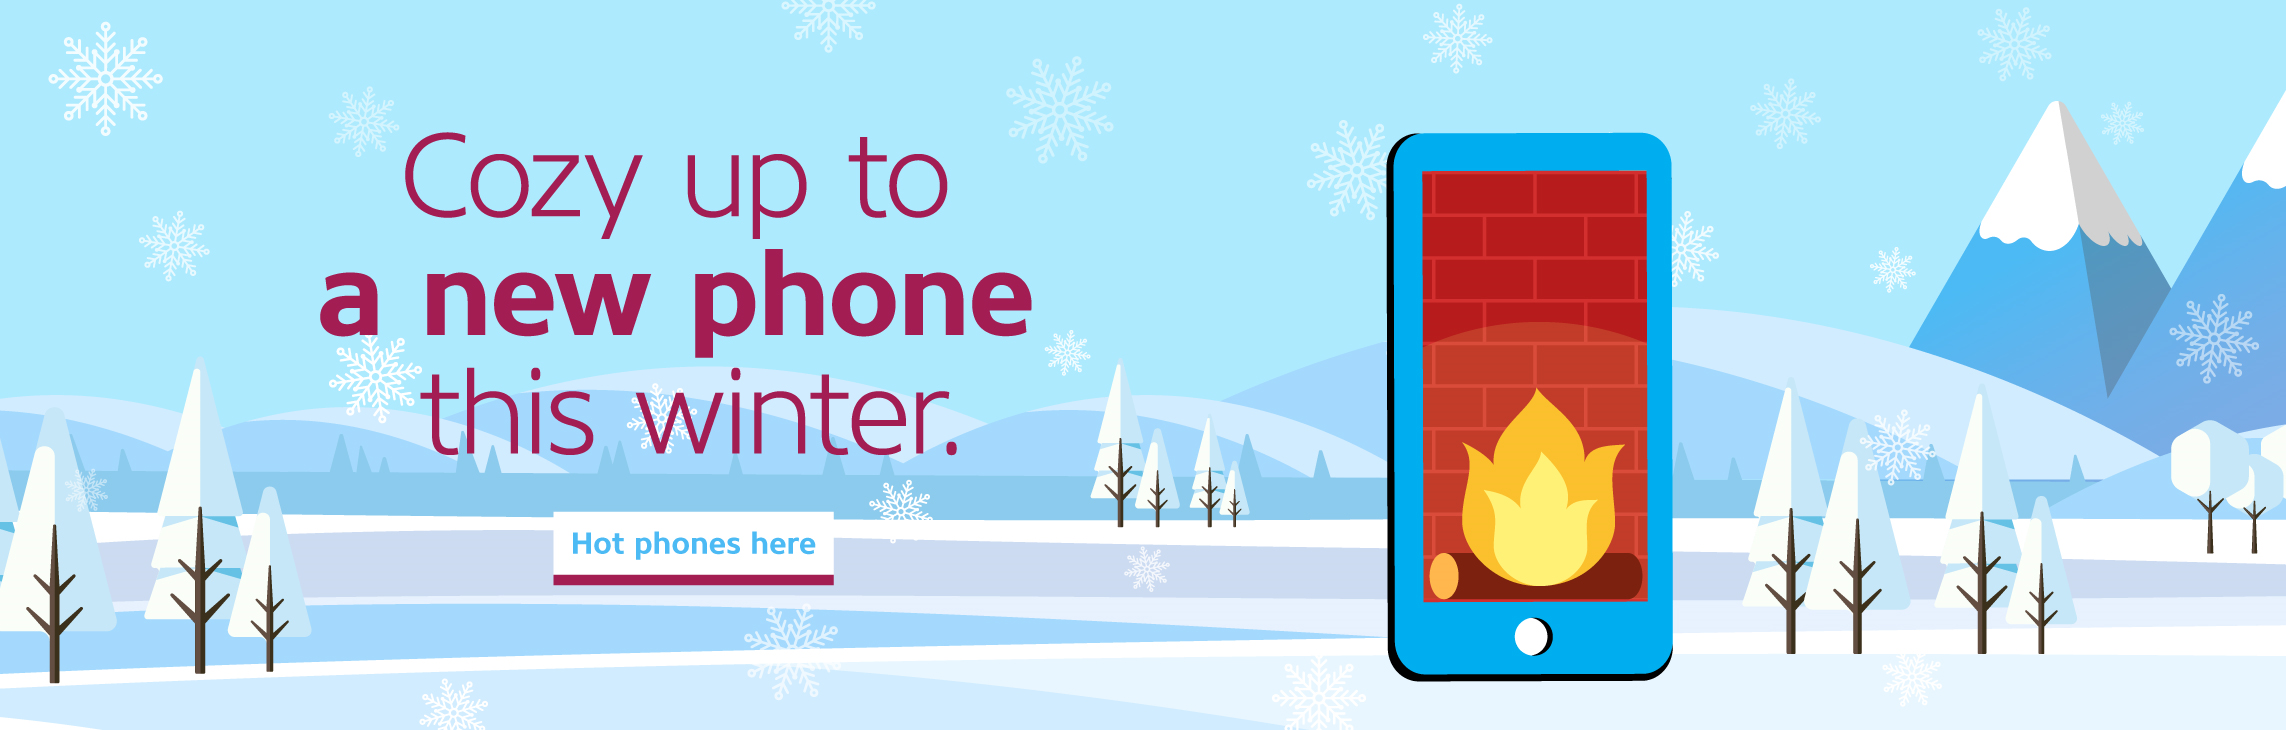 Cozy up to a new phone this winter.